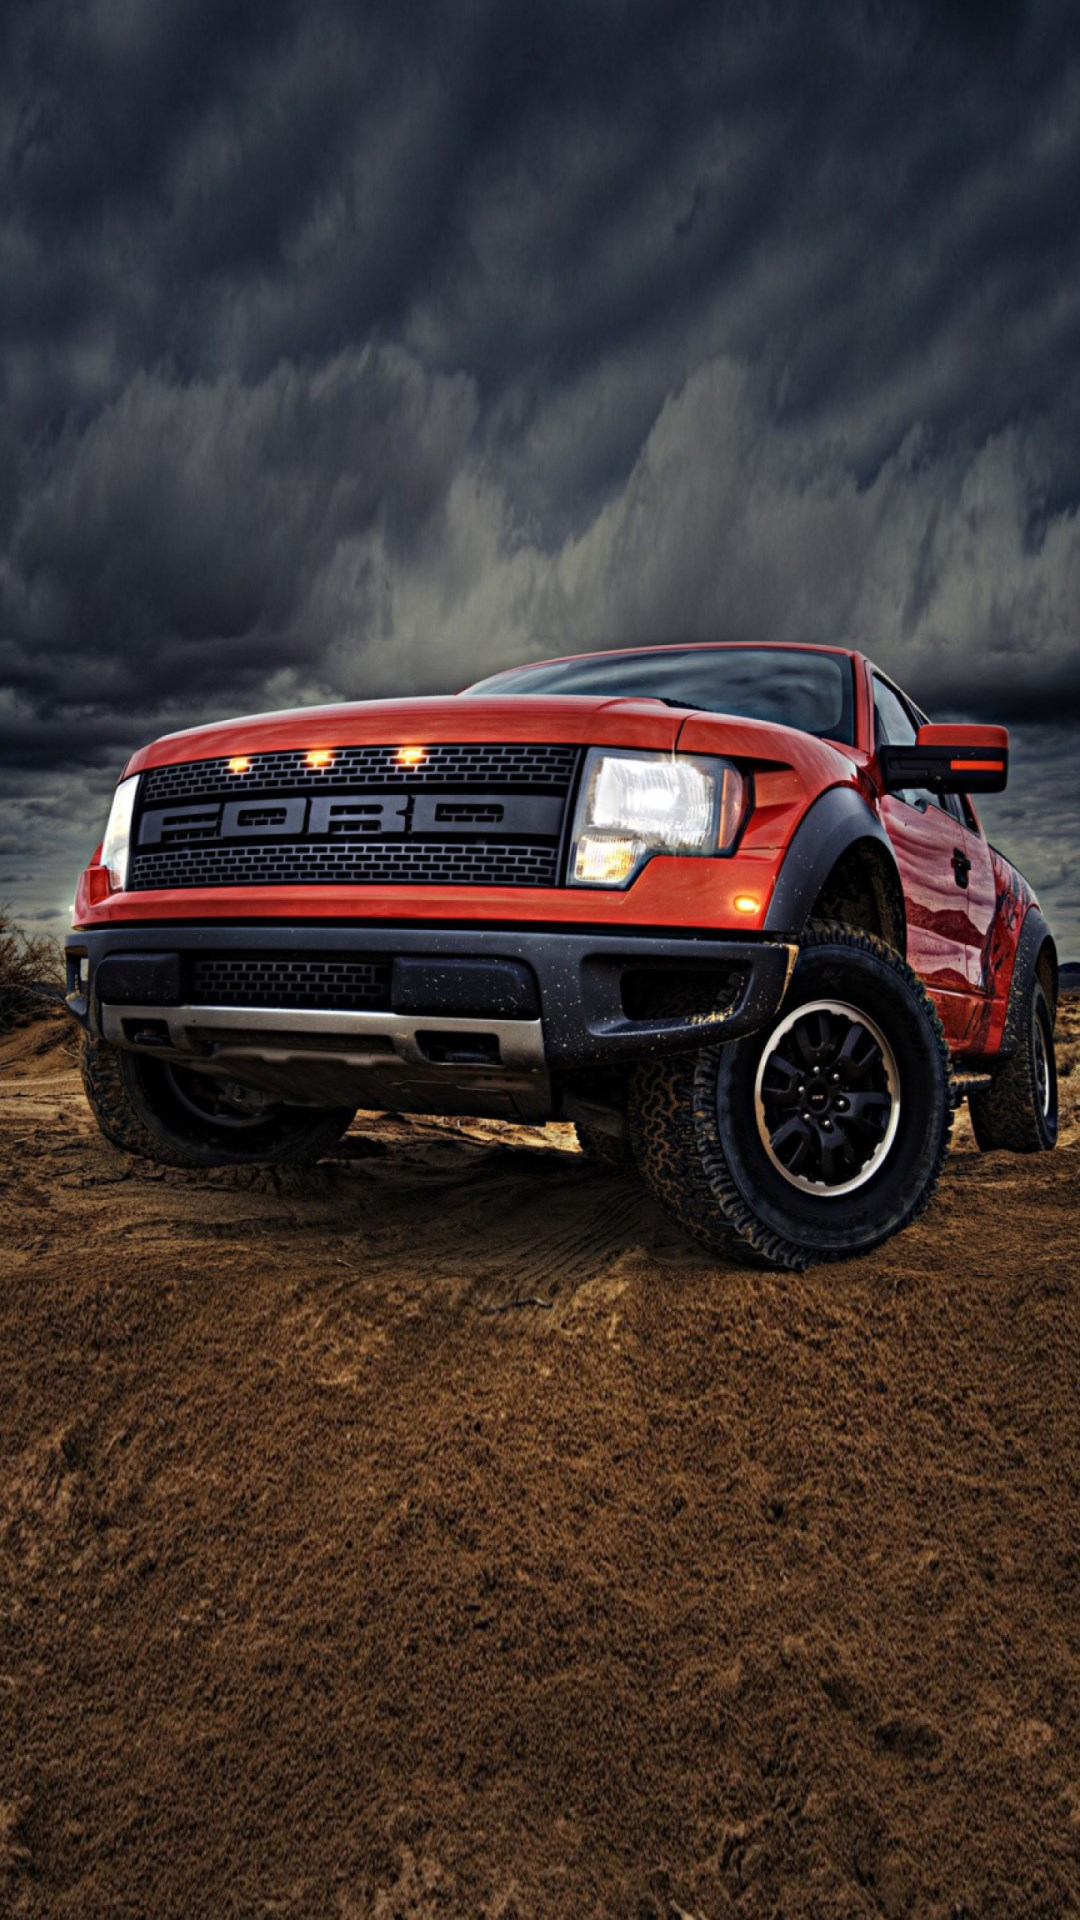 ford-f-svt-raptor-1080x1920-wallpaper-wpc9005081